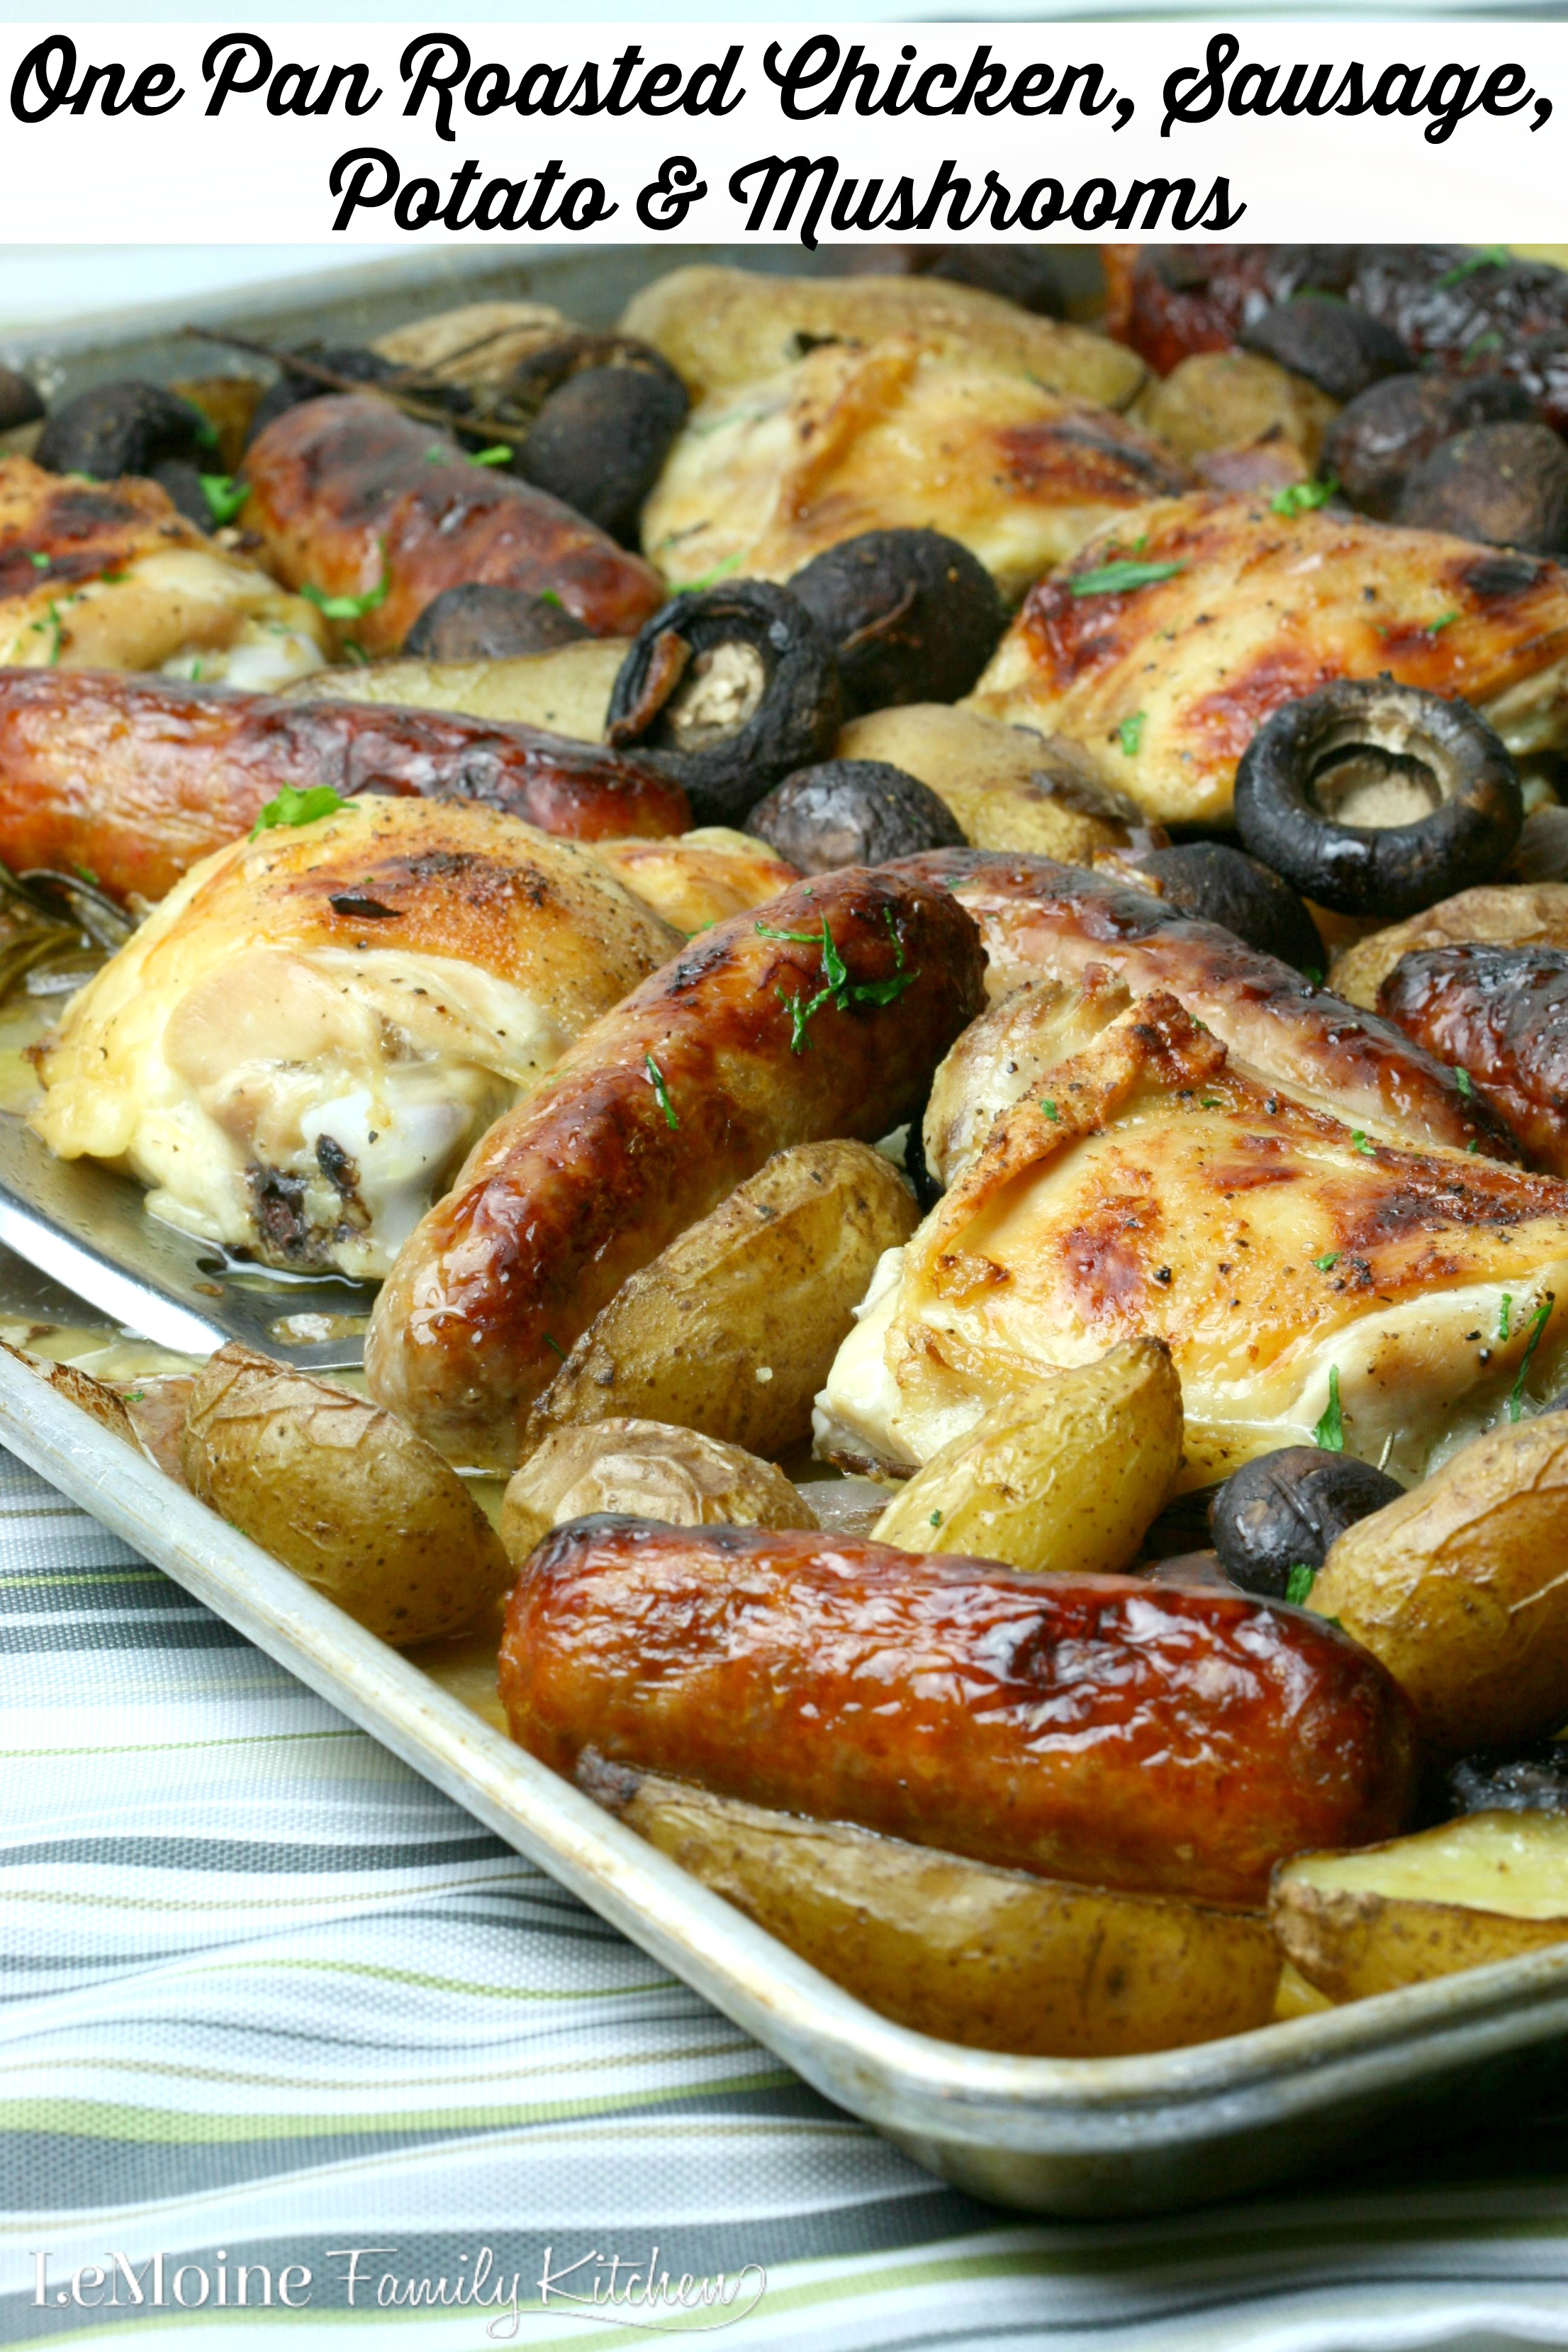 One Pan Roasted Chicken, Sausage, Potato & Mushrooms